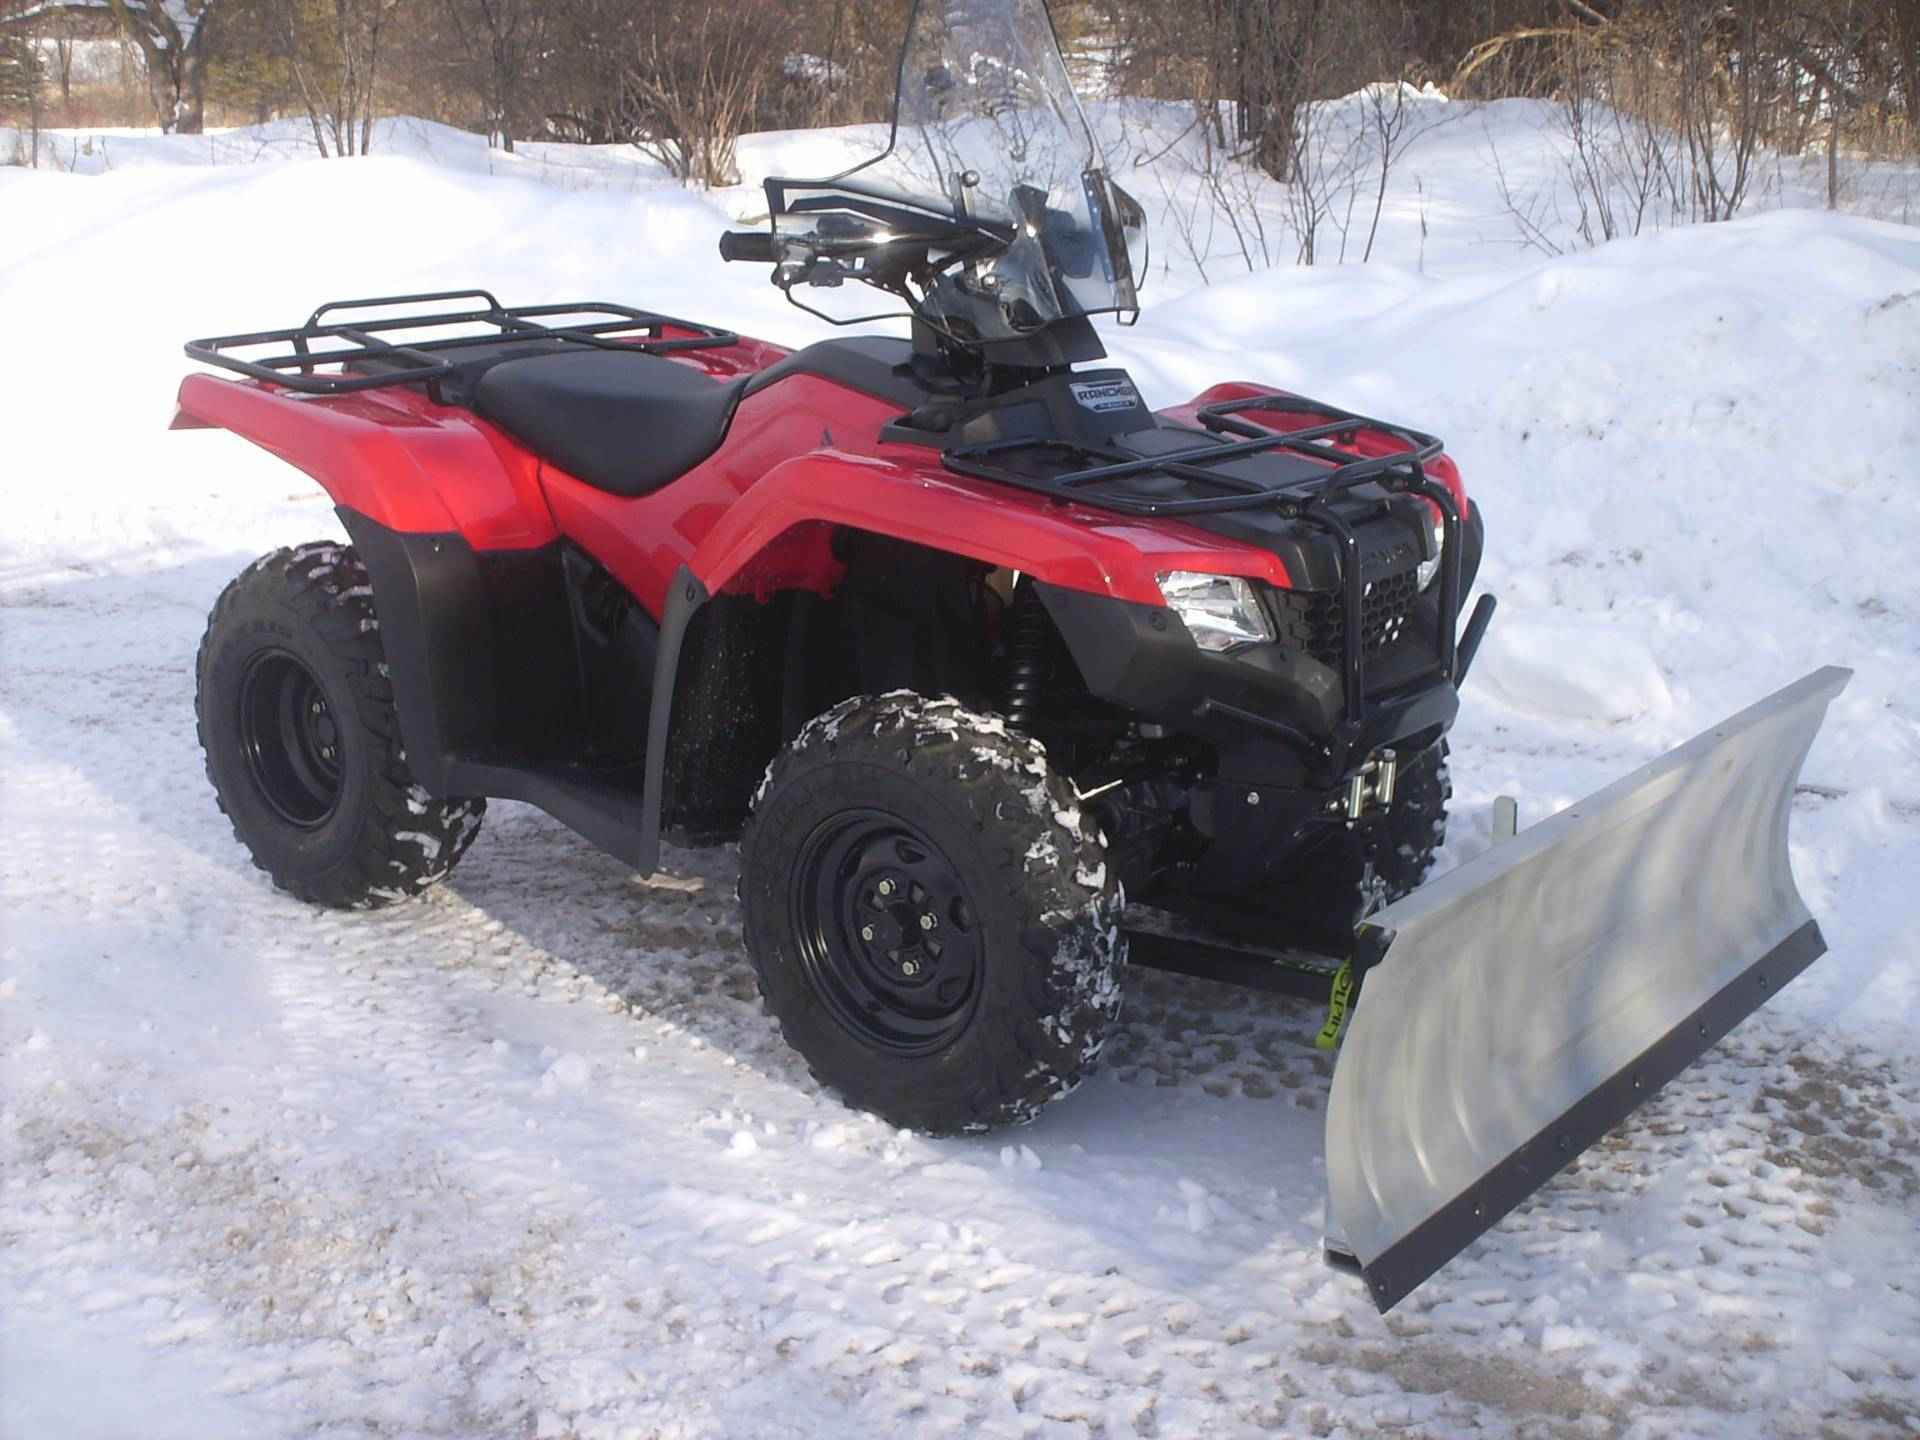 yamaha golf carts oklahoma polk audio subwoofer wiring diagram used 2017 honda fourtrax rancher 4x4 es atvs for sale in wisconsin on atv trades